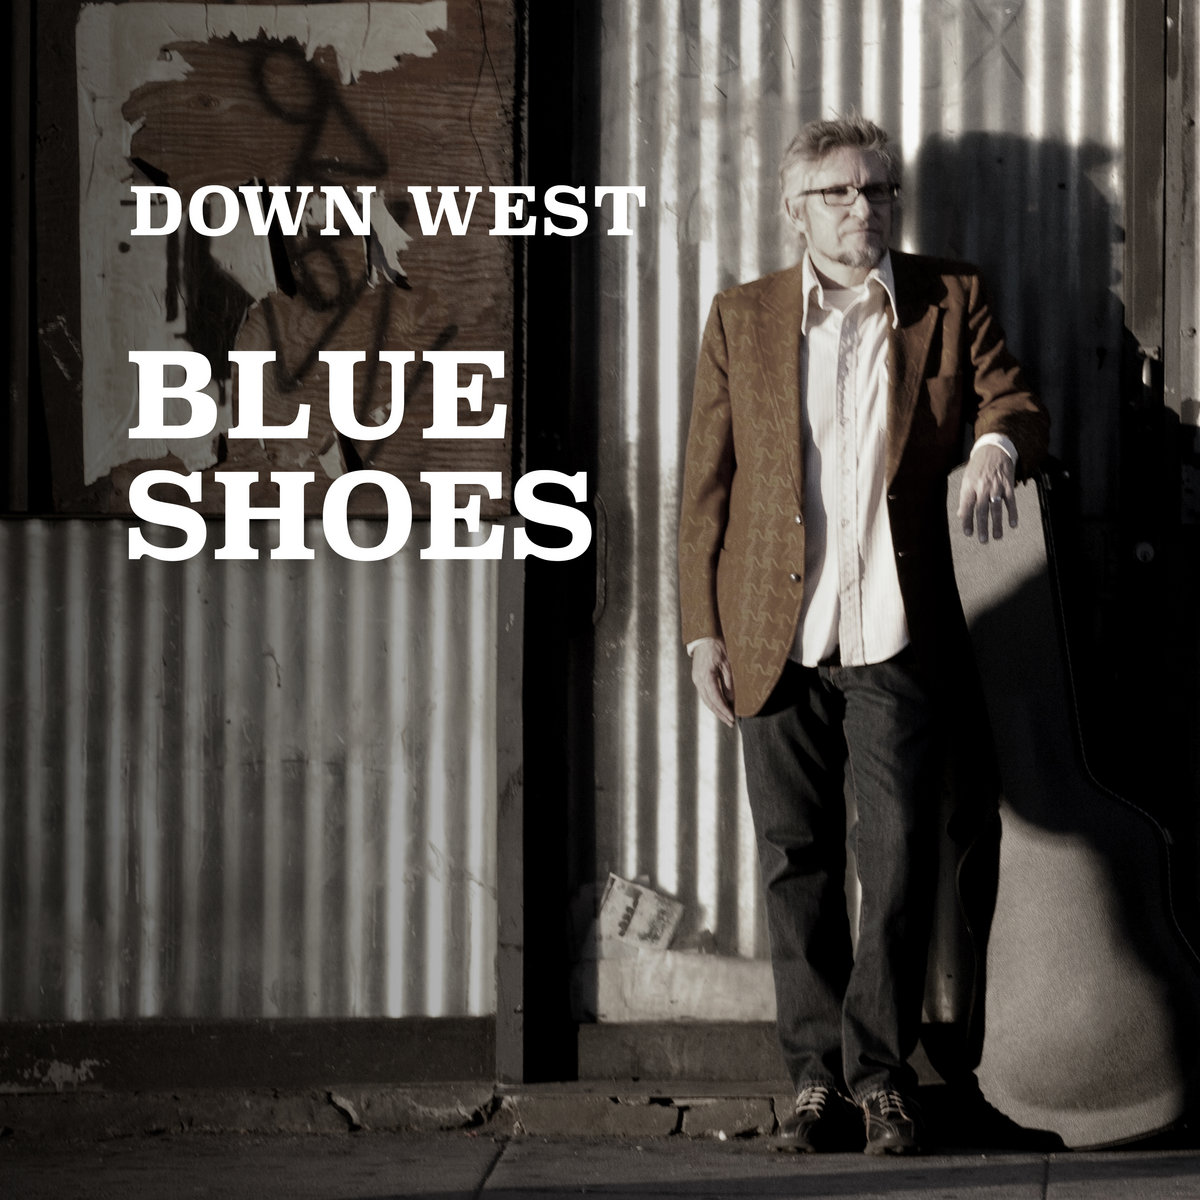 Blue Shoes by Down West